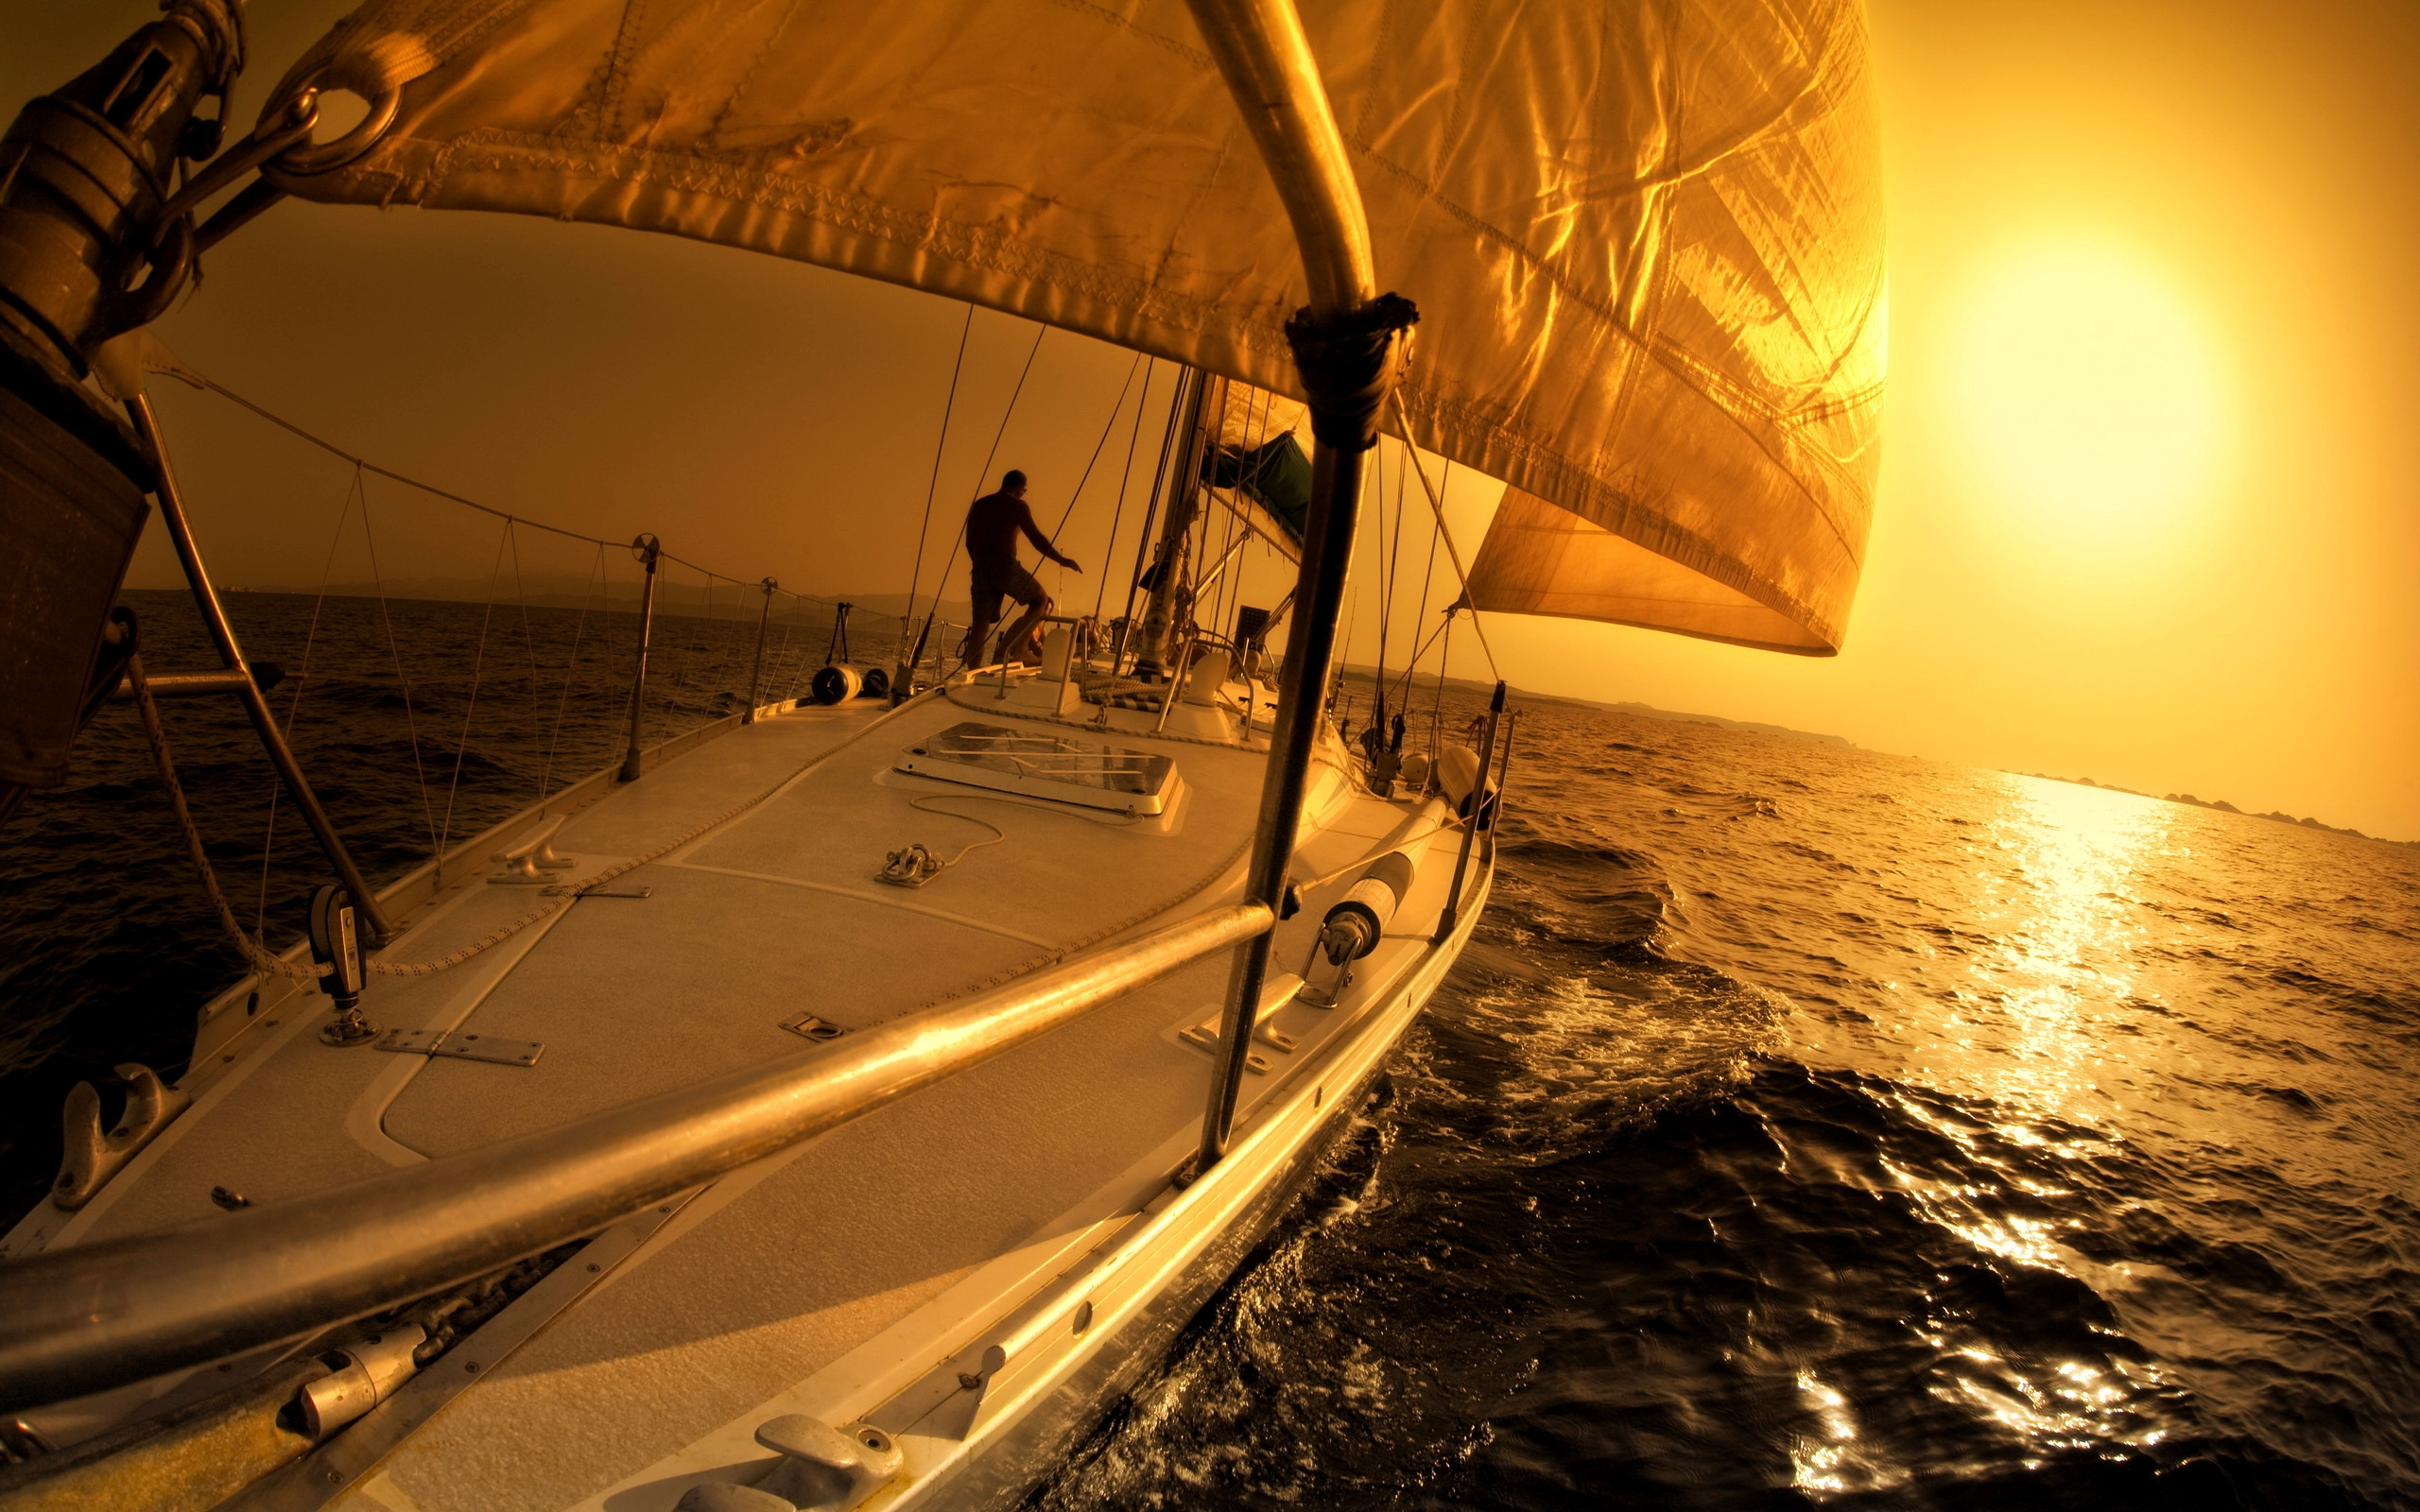 sailboat sunset widescreen wallpaper 51559